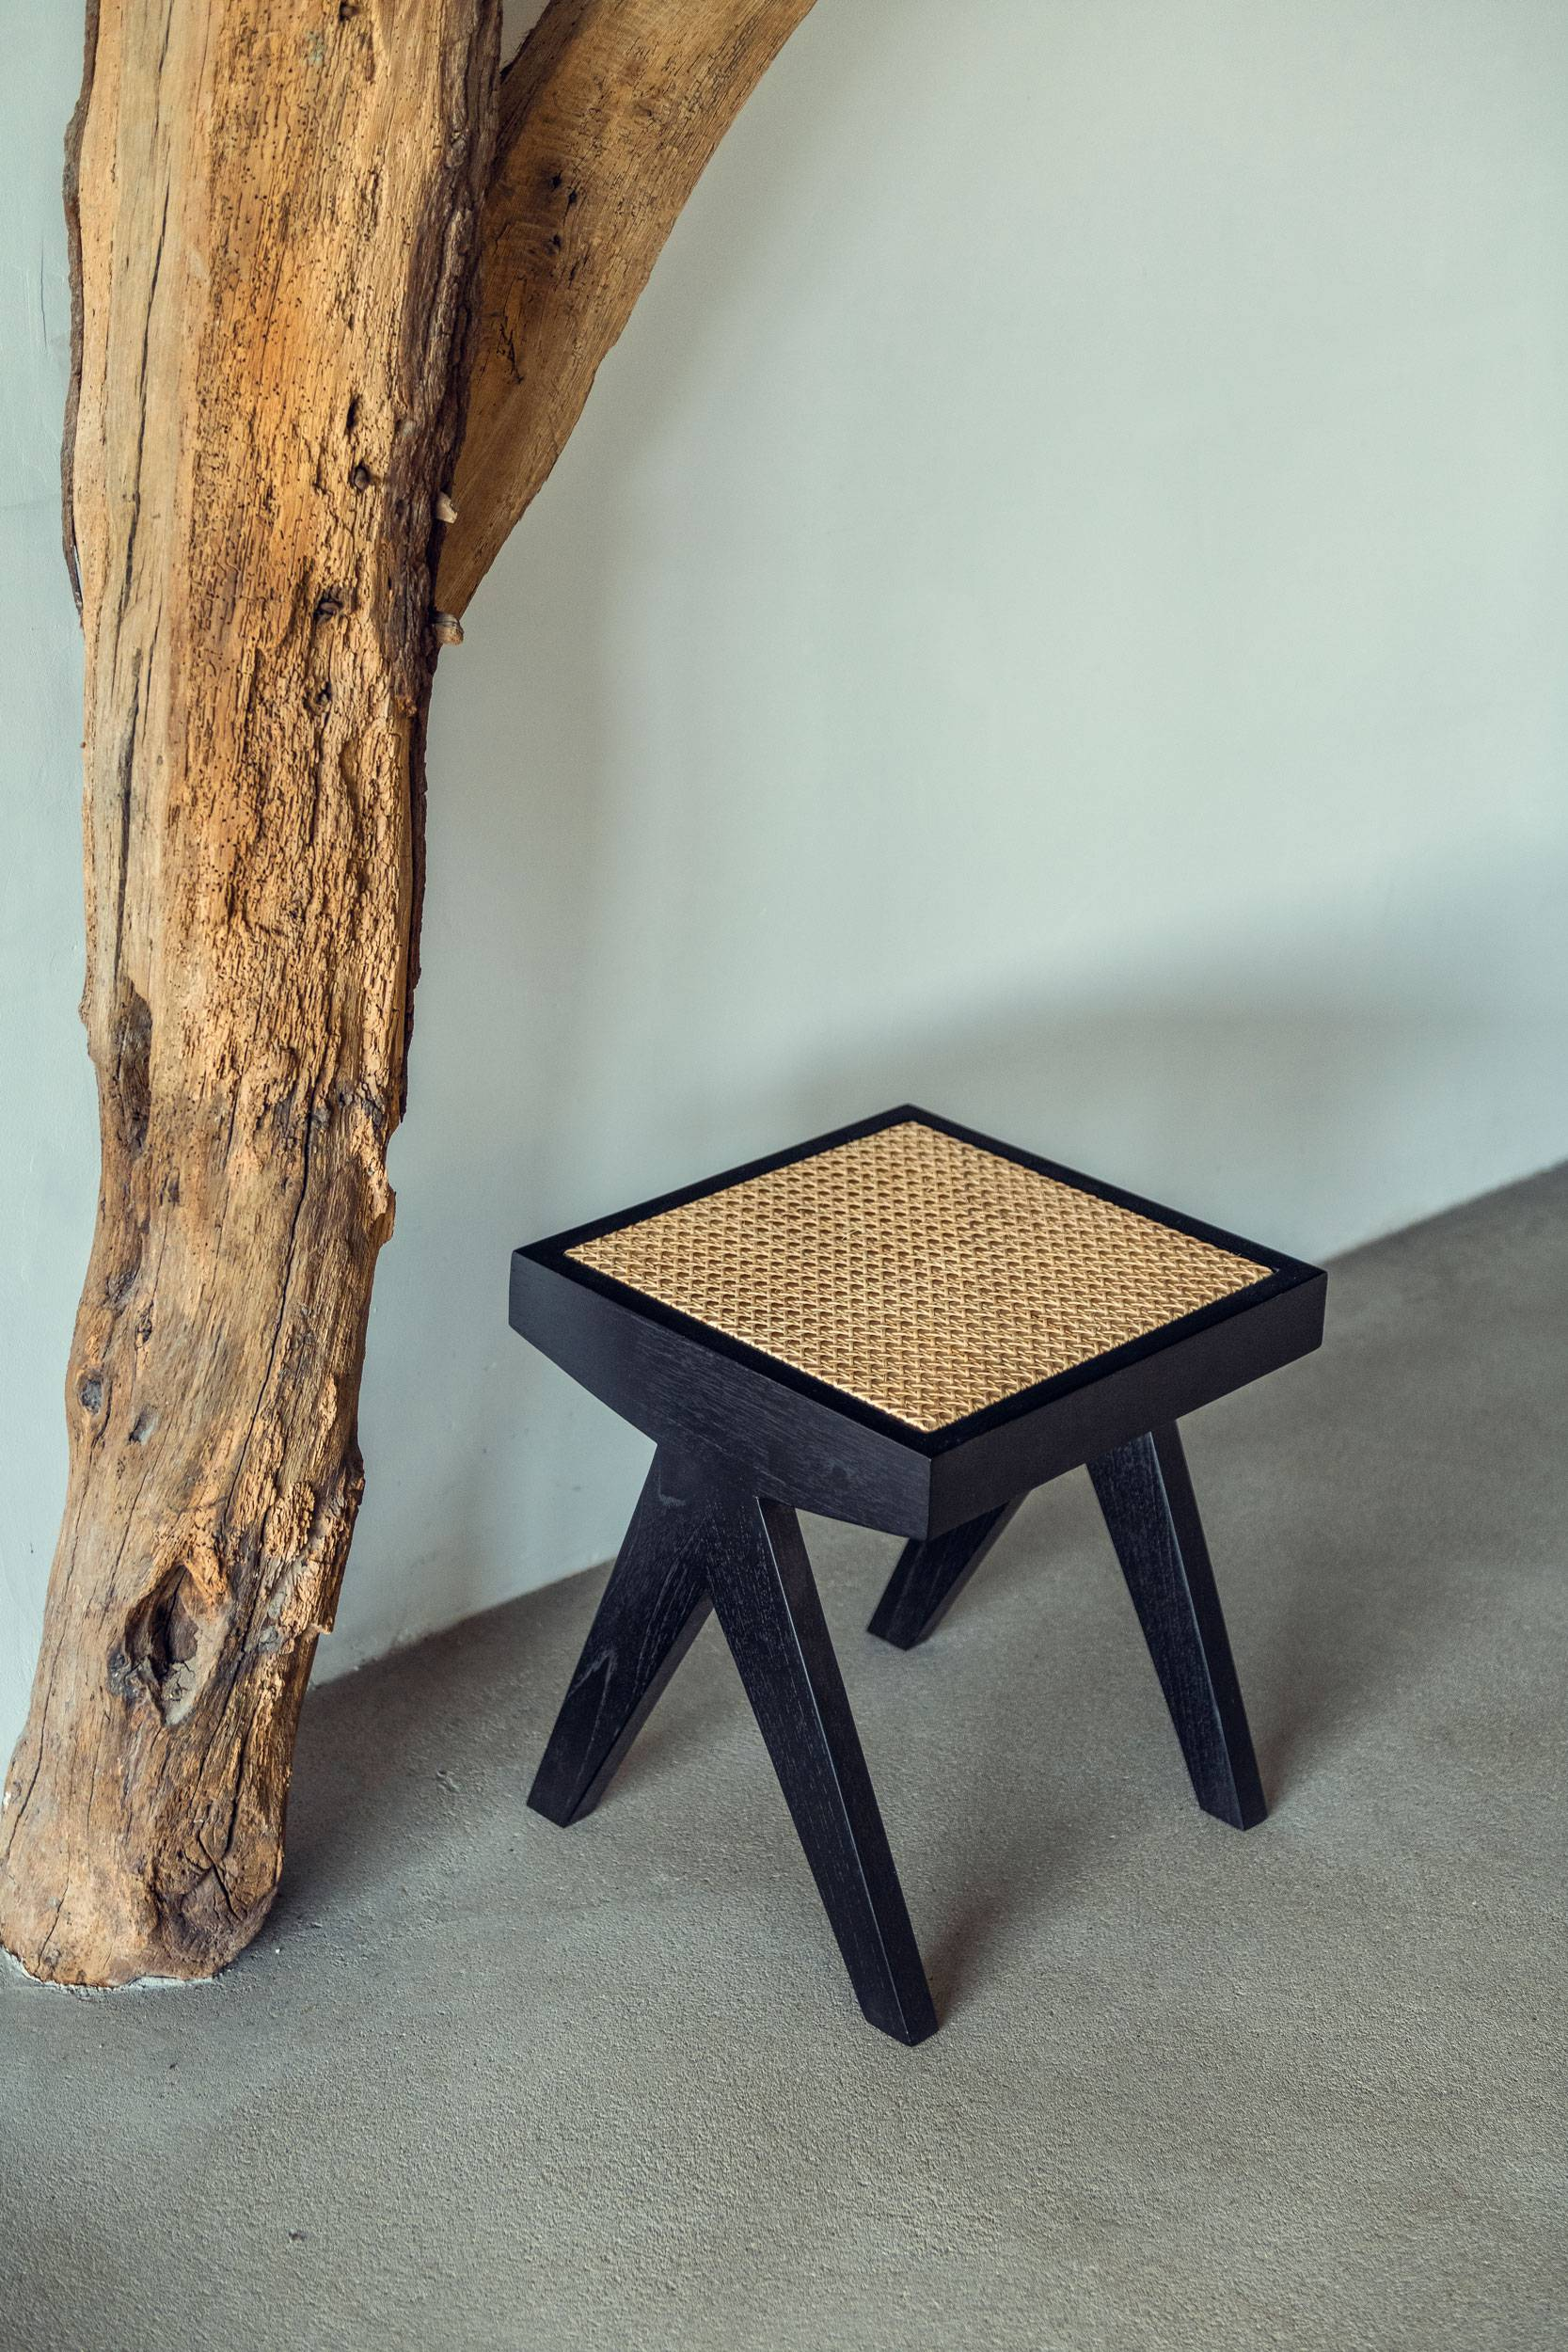 The Stool-1